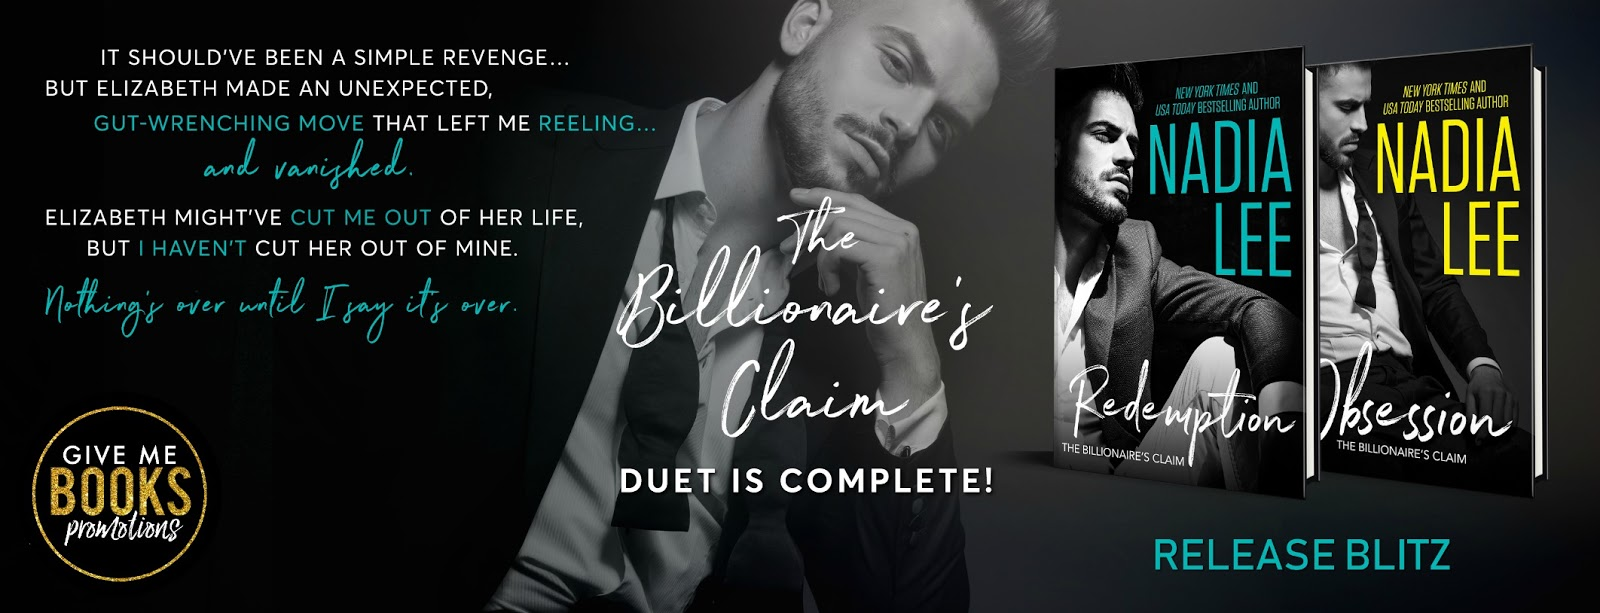 Deal Sharing Aunt: The Billionaire's Claim: Redemption by